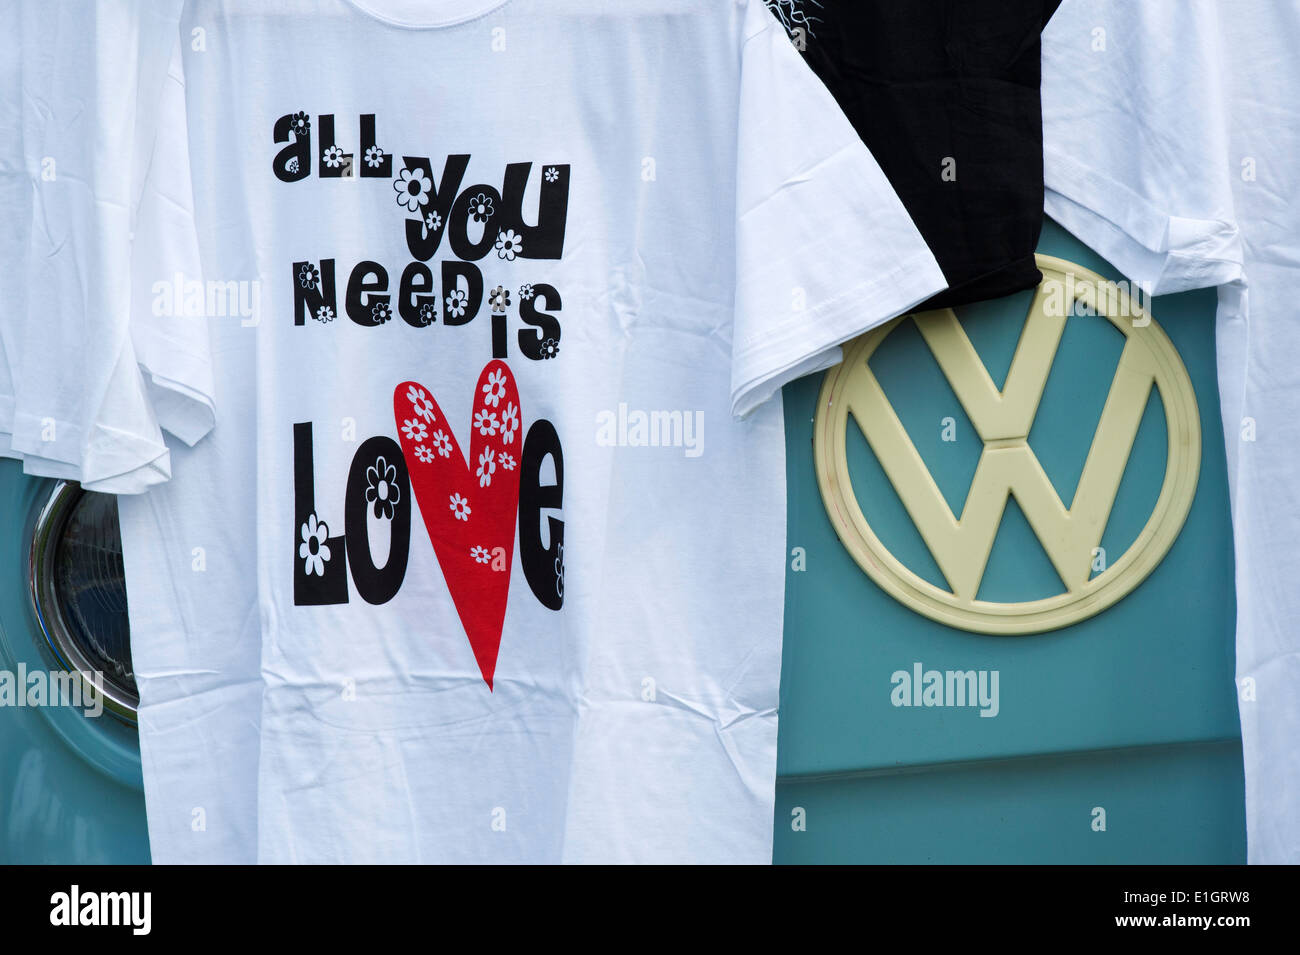 All you need is Love tee shirt at a VW Show. England - Stock Image